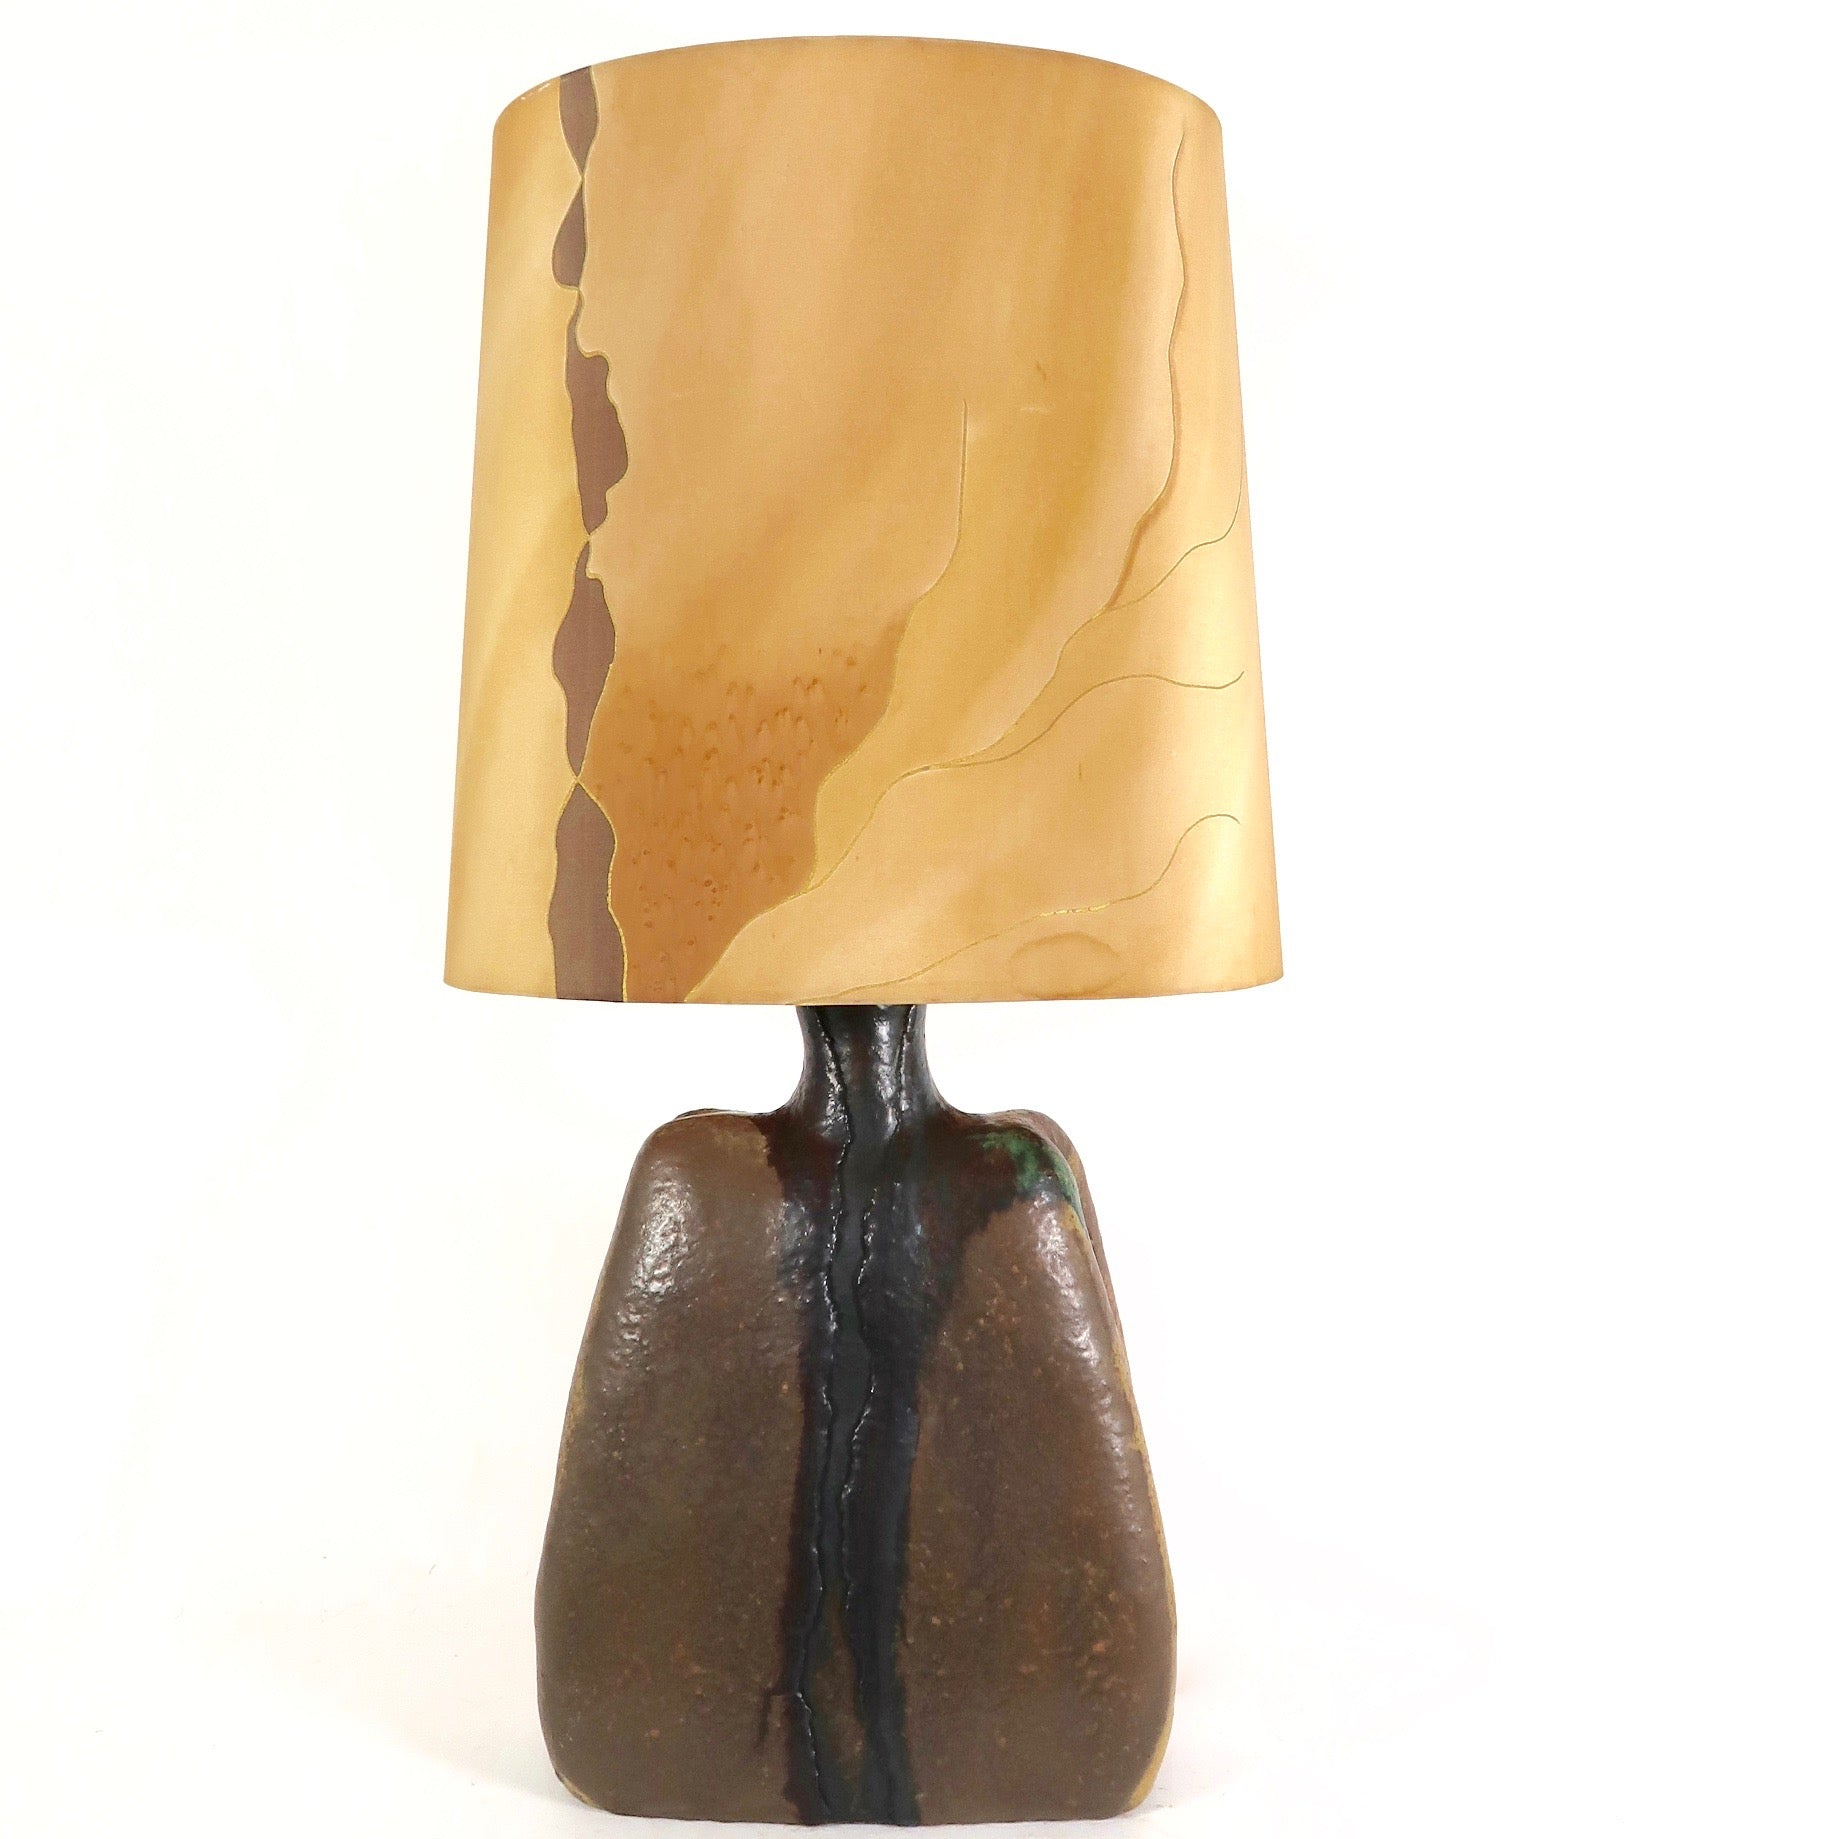 Striking sculptural ceramic table lamp with original shade  .